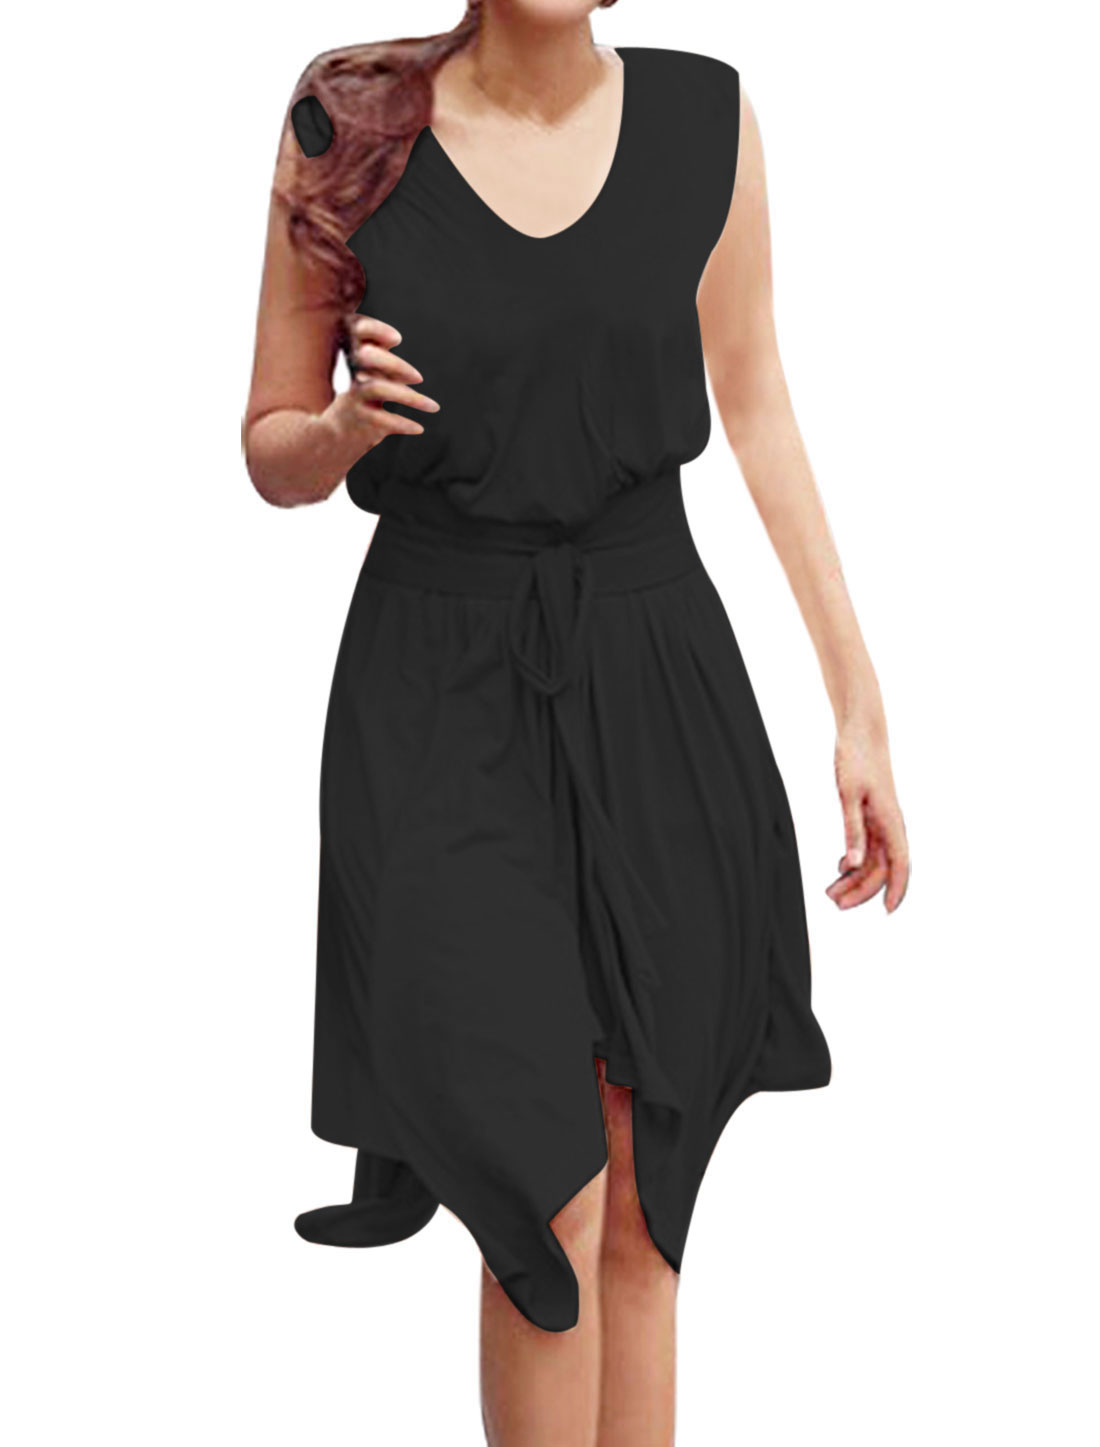 Ladies Chic V Neck Solid Color Irregular Hem Design Black Dress M